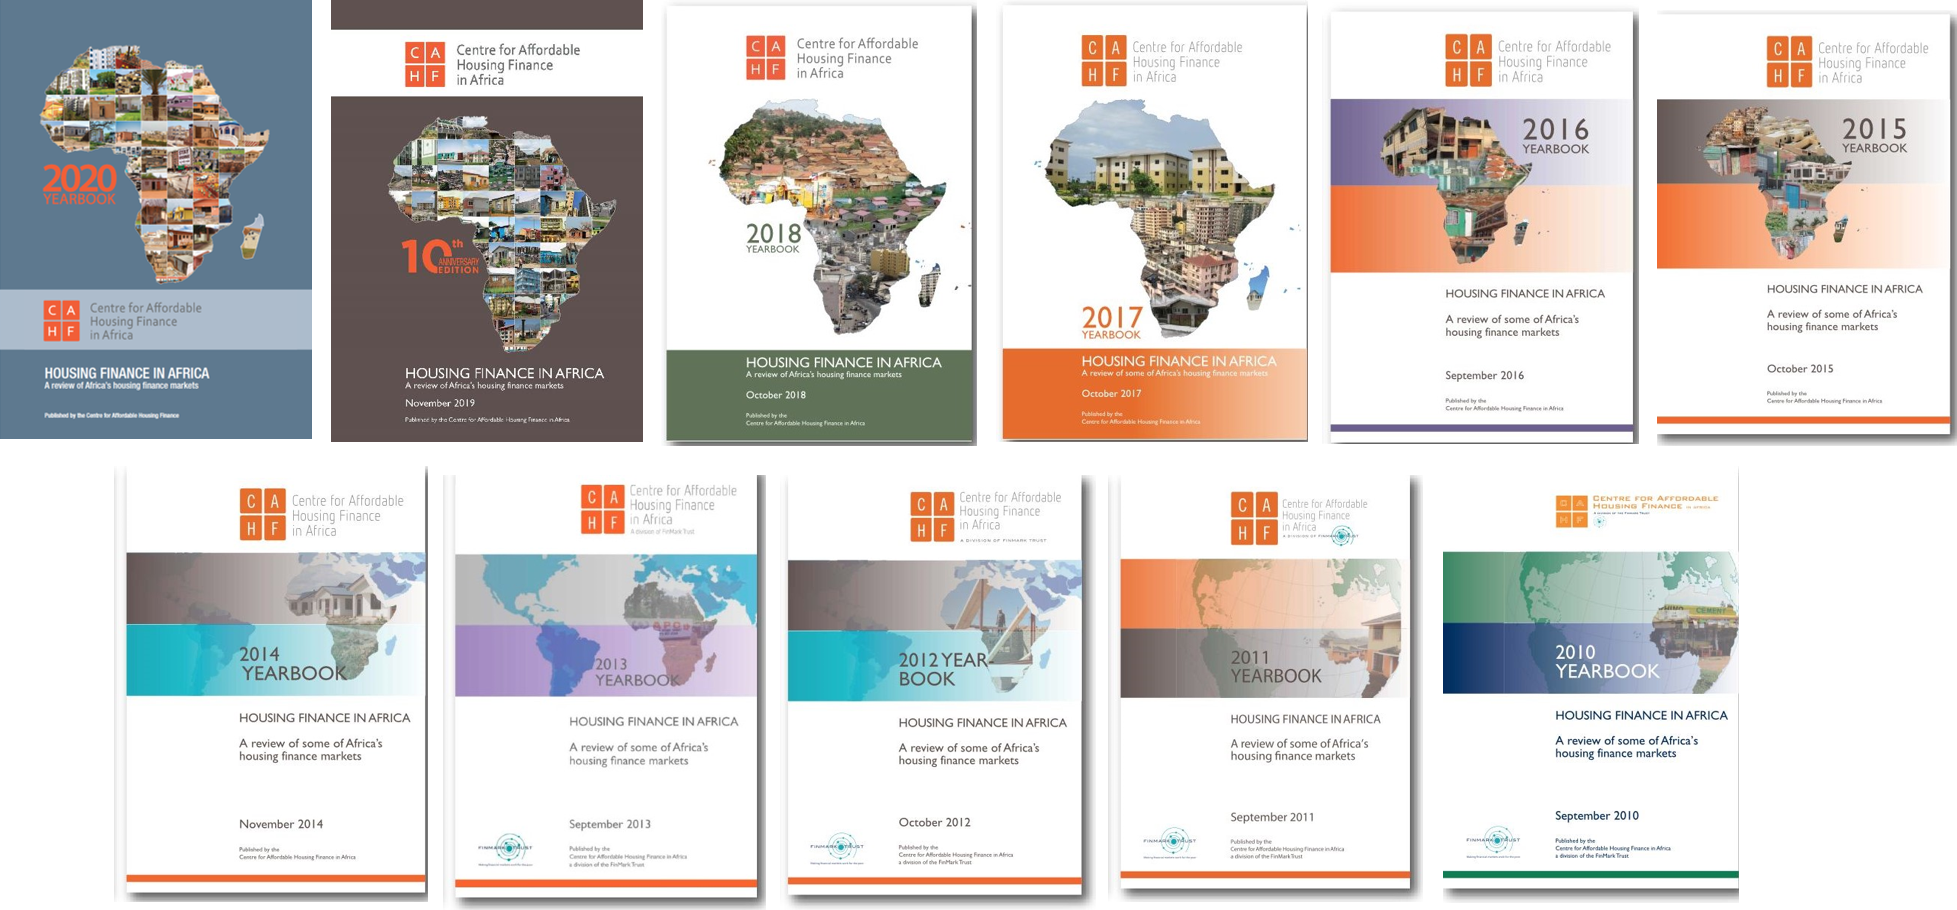 http://housingfinanceafrica.org/projects/housing-finance-yearbook/